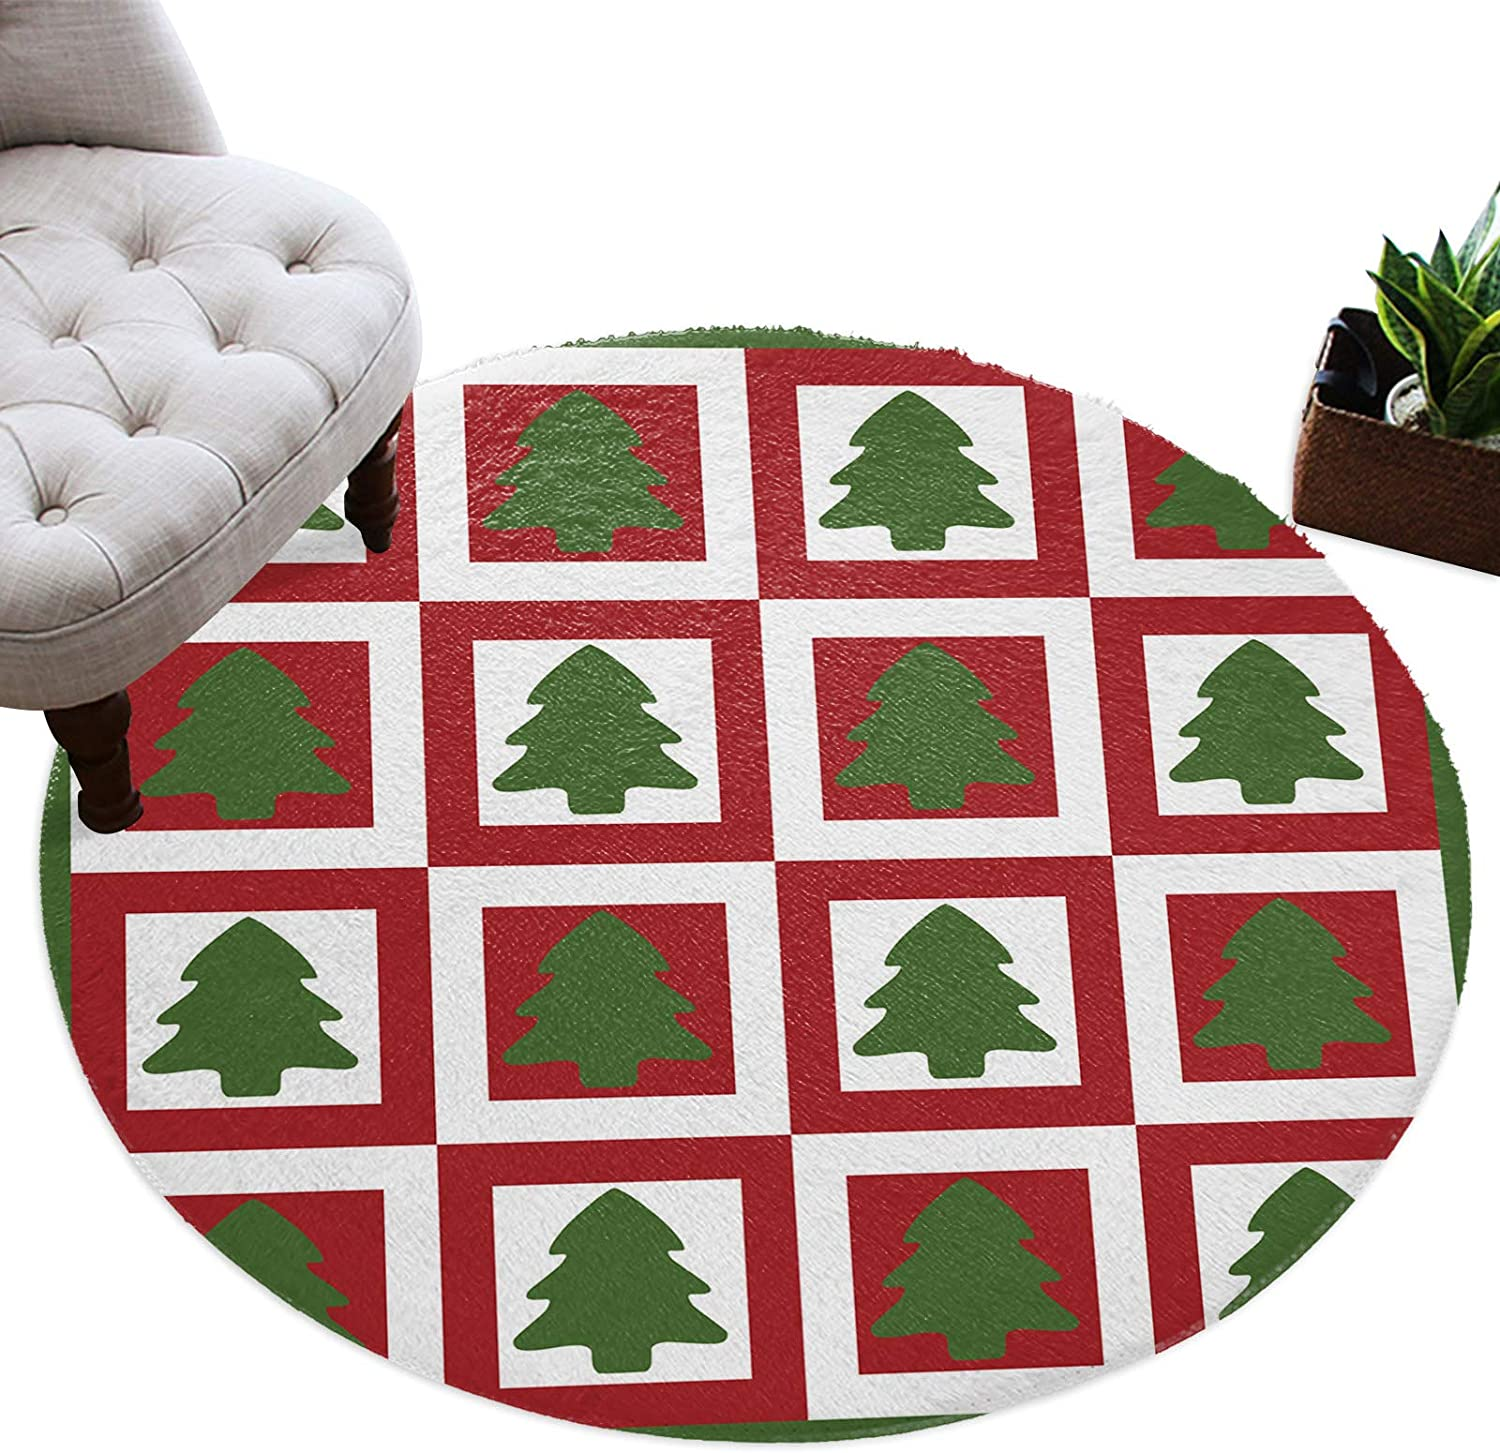 Round Area Bargain sale Rugs for Kids Room Tree Christmas Green Red Lodge Ca Max 41% OFF